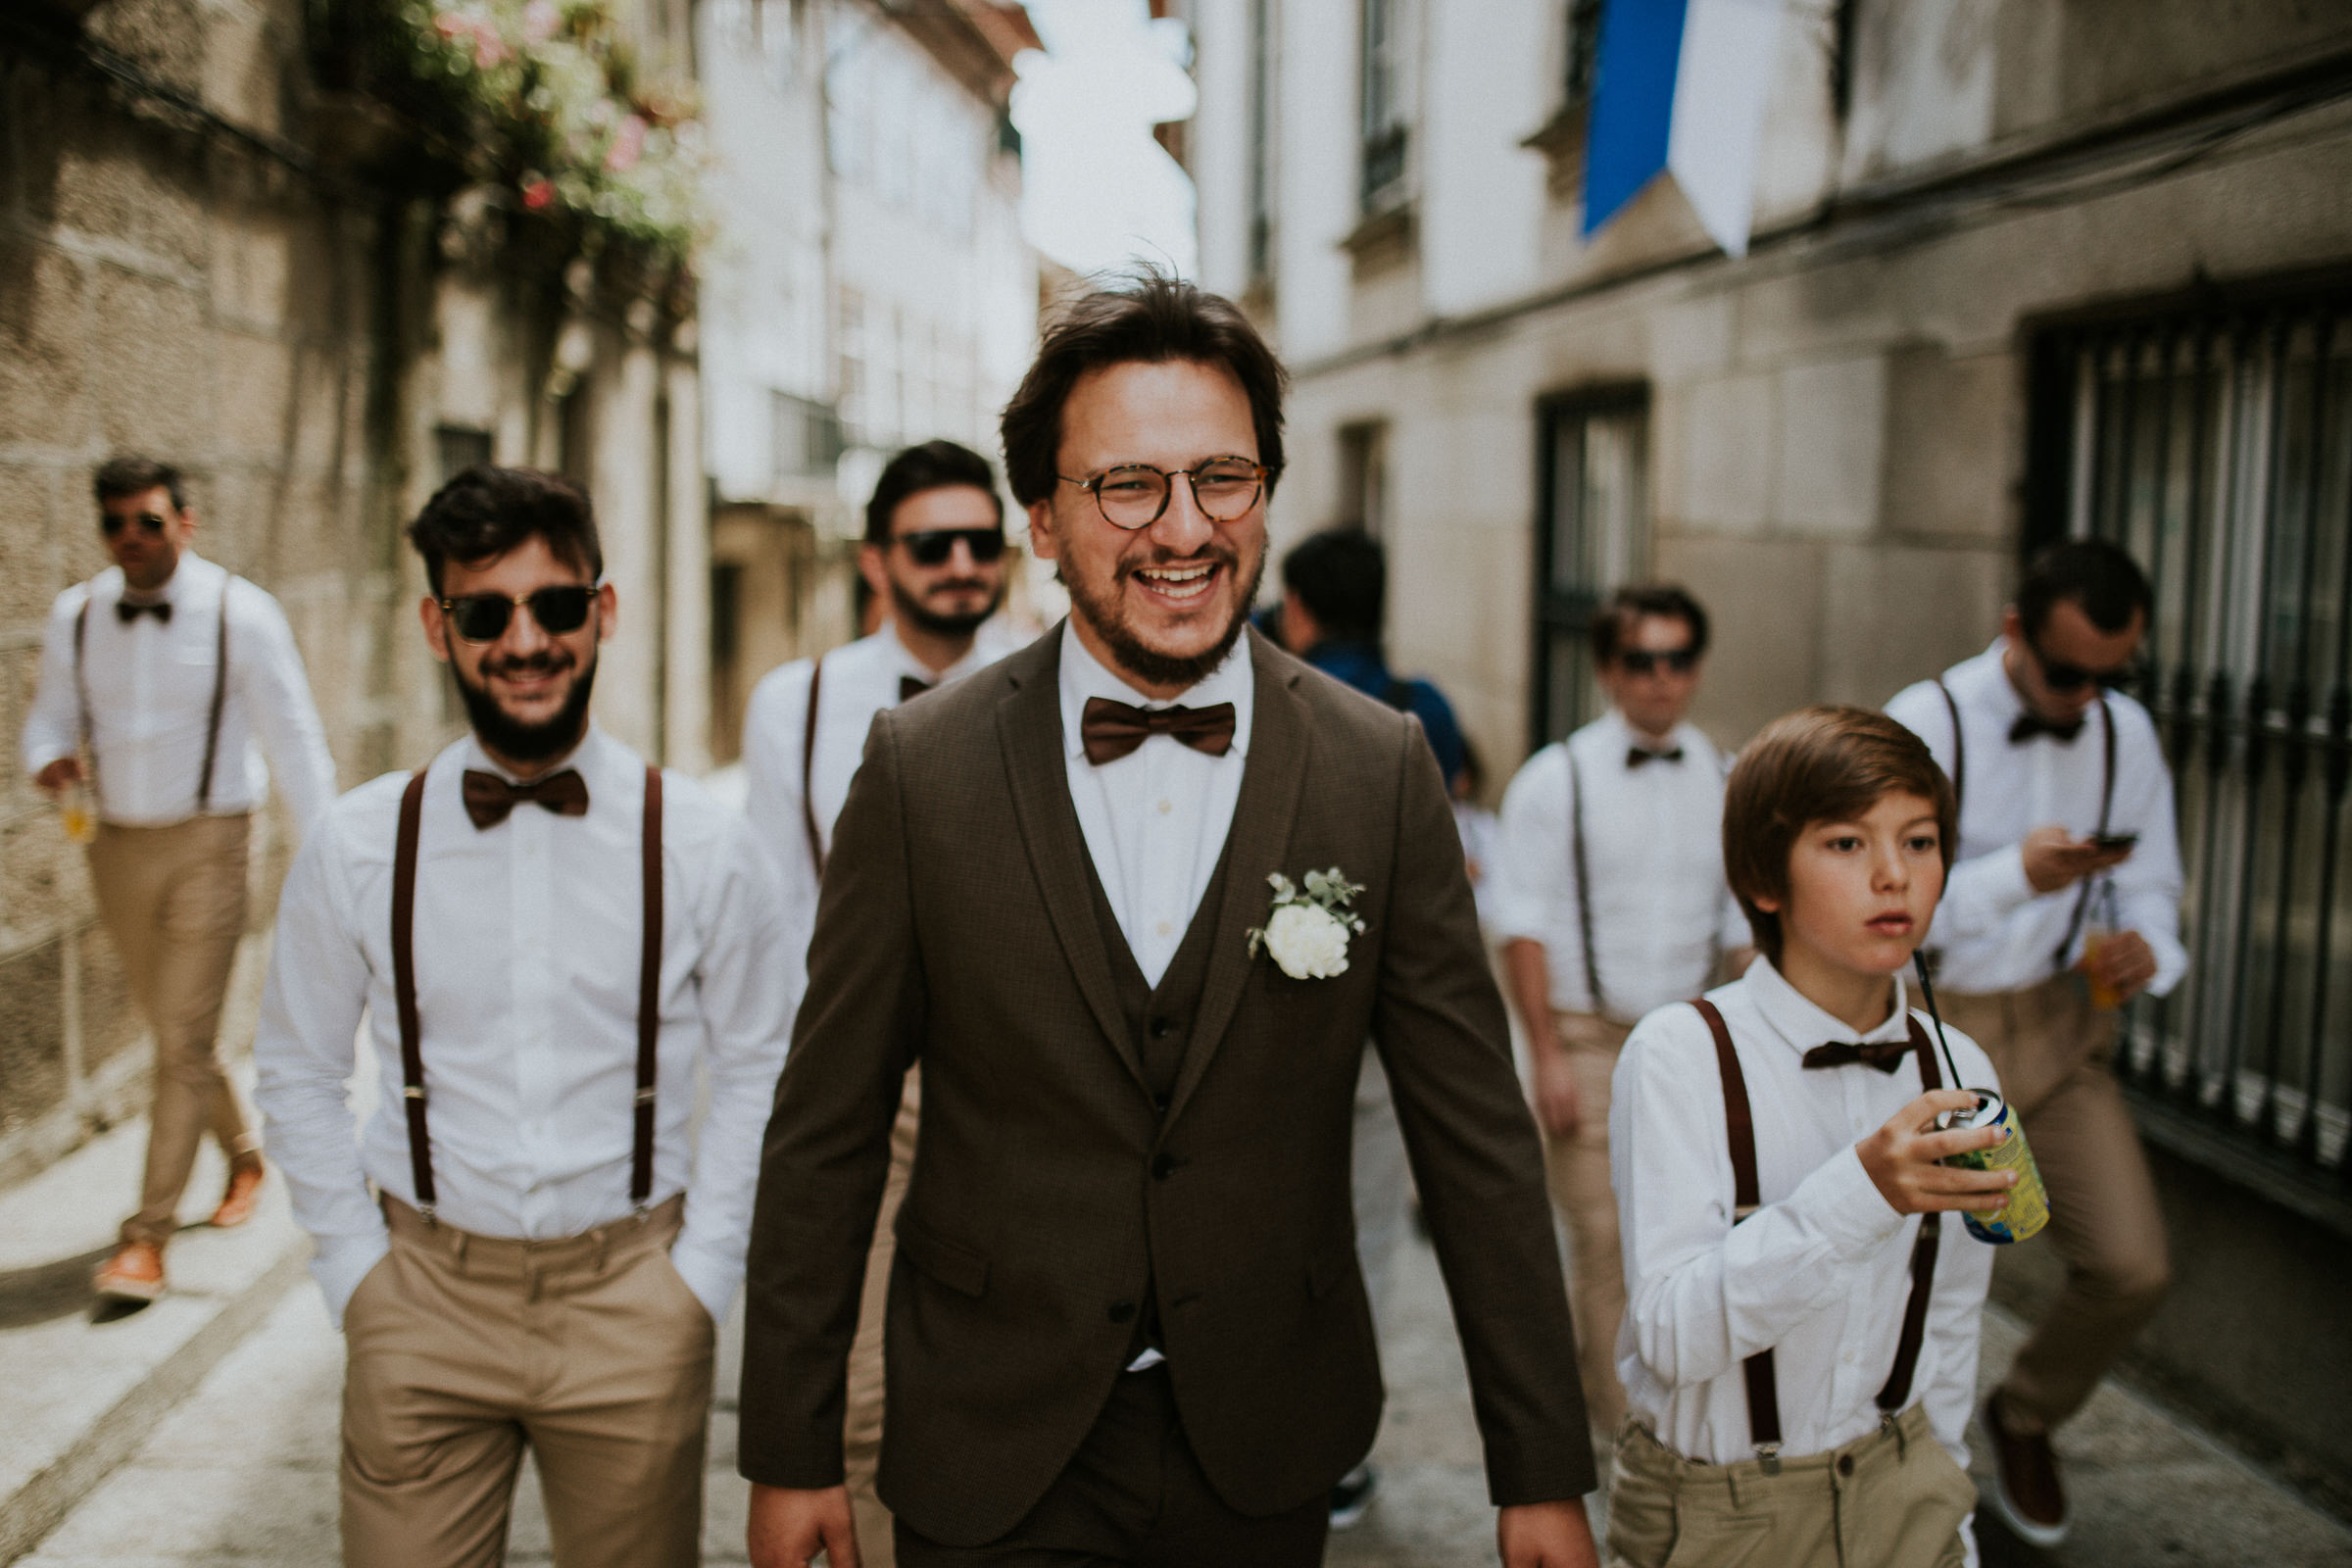 boho chic groom and bestmen walking in the city streets